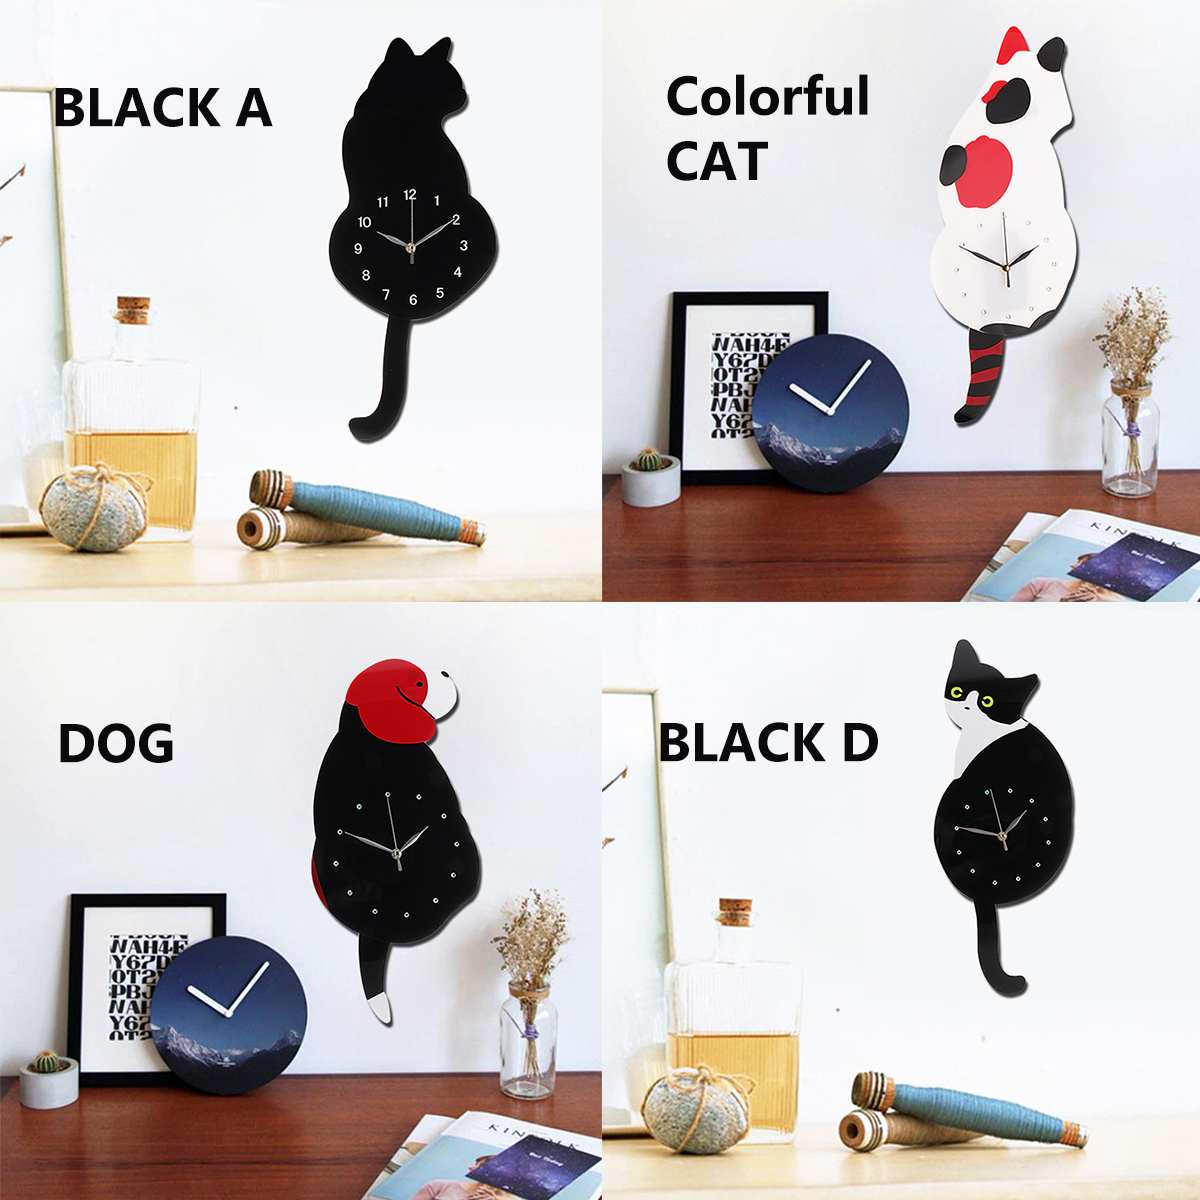 Cat Dog Animal Pattern Swing Tail Vintage Wall Clocks Bedroom Living Room Offlice Decor Wall Hanging Clock Without Battery